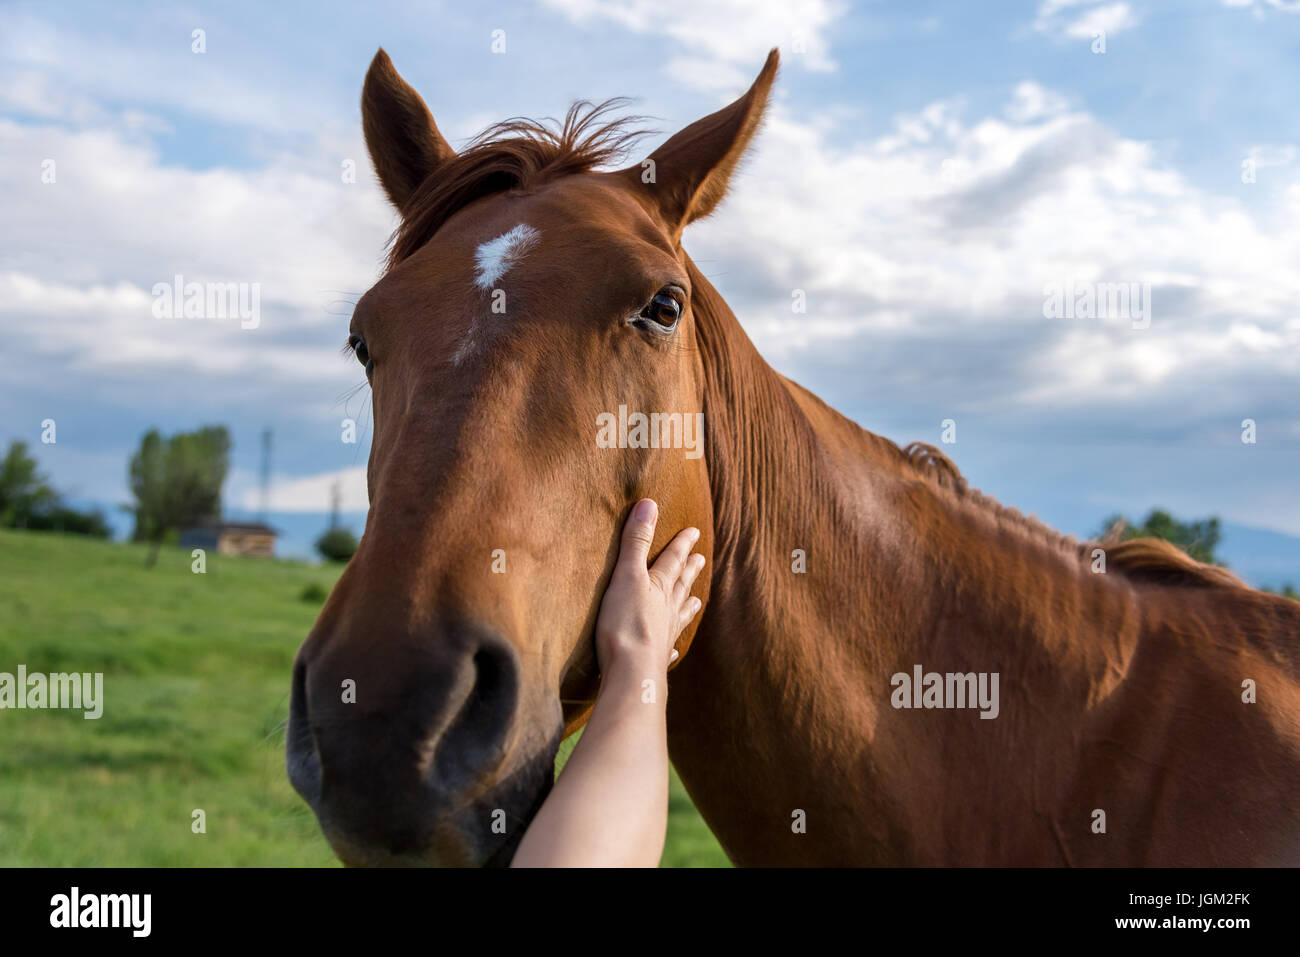 The hand of a woman is stroking a horse at sunset - Stock Image